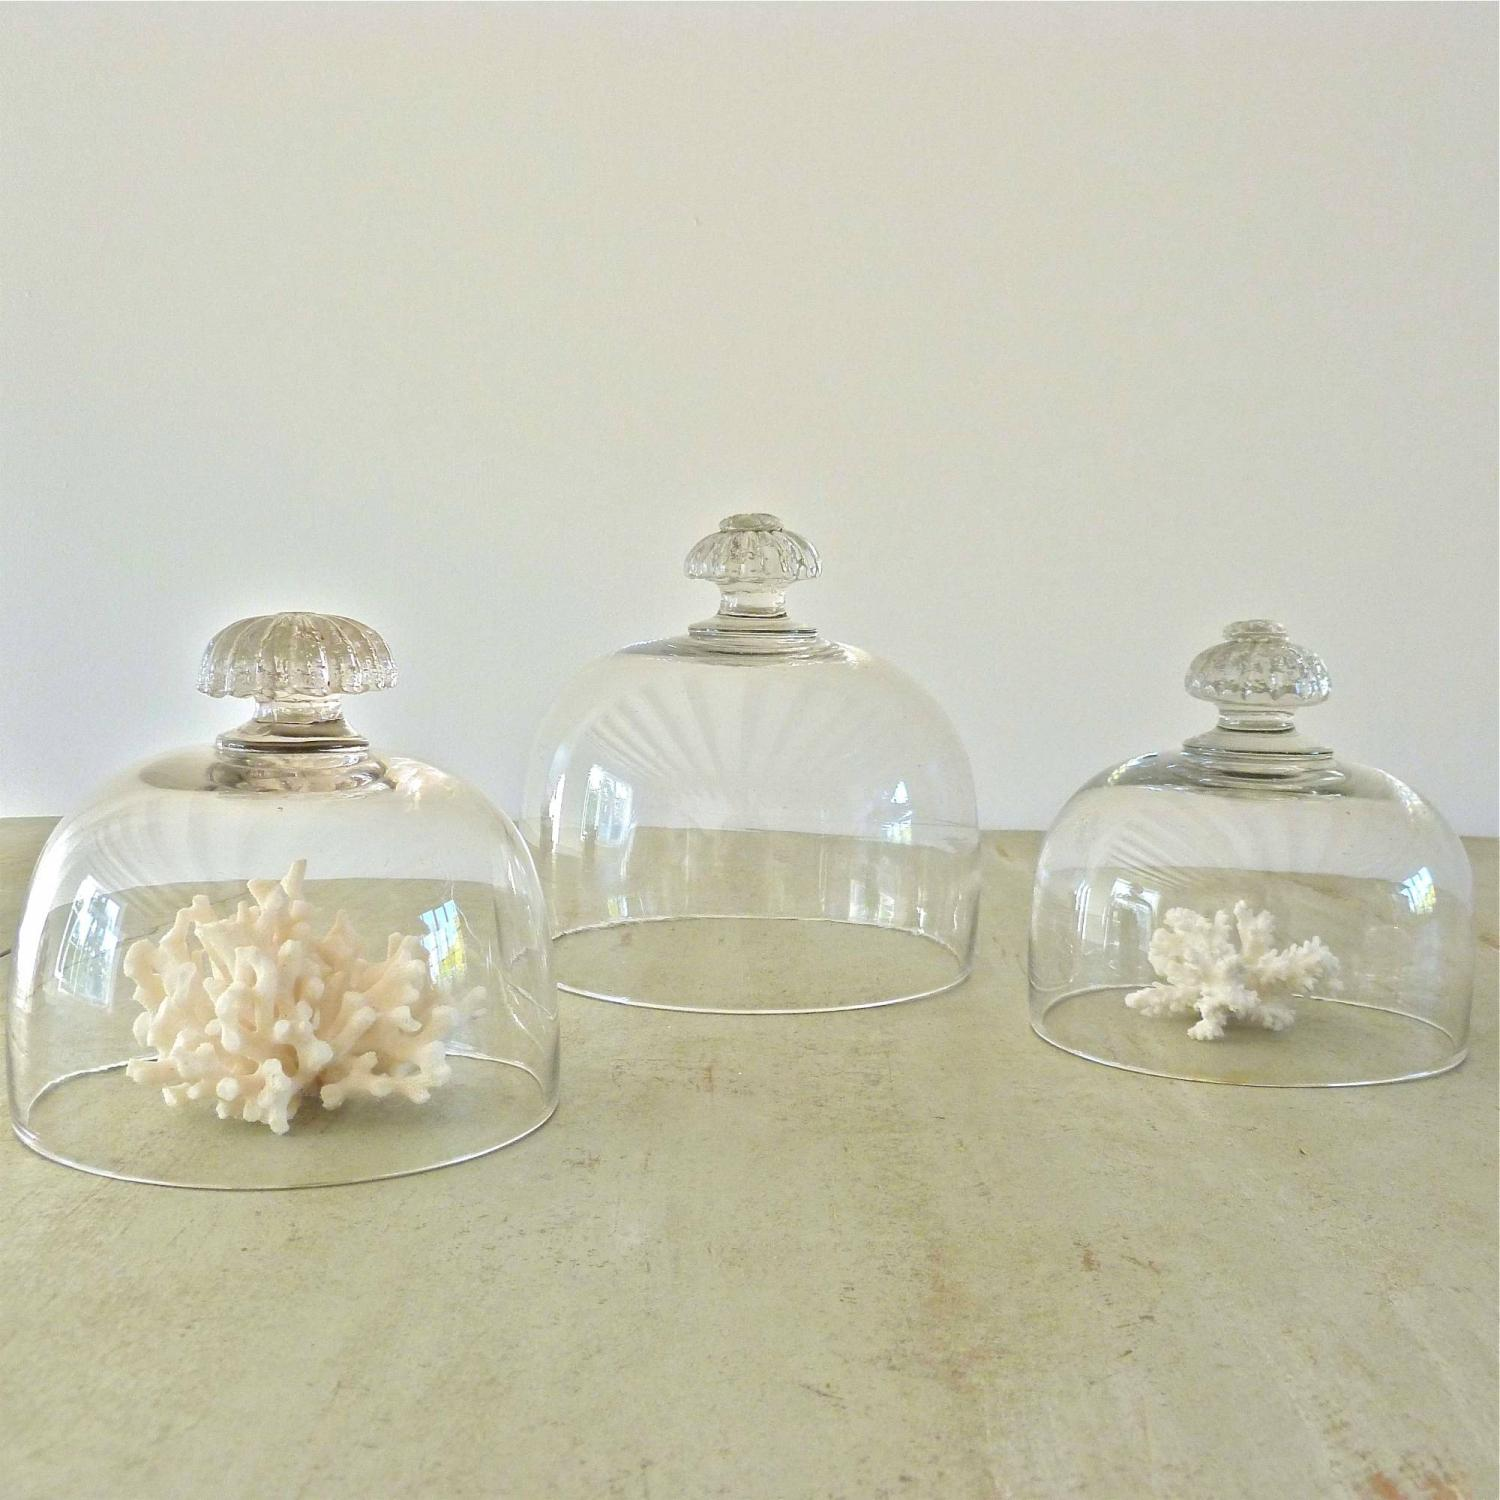 SET OF THREE 19TH CENTURY FRENCH GLASS CLOCHES